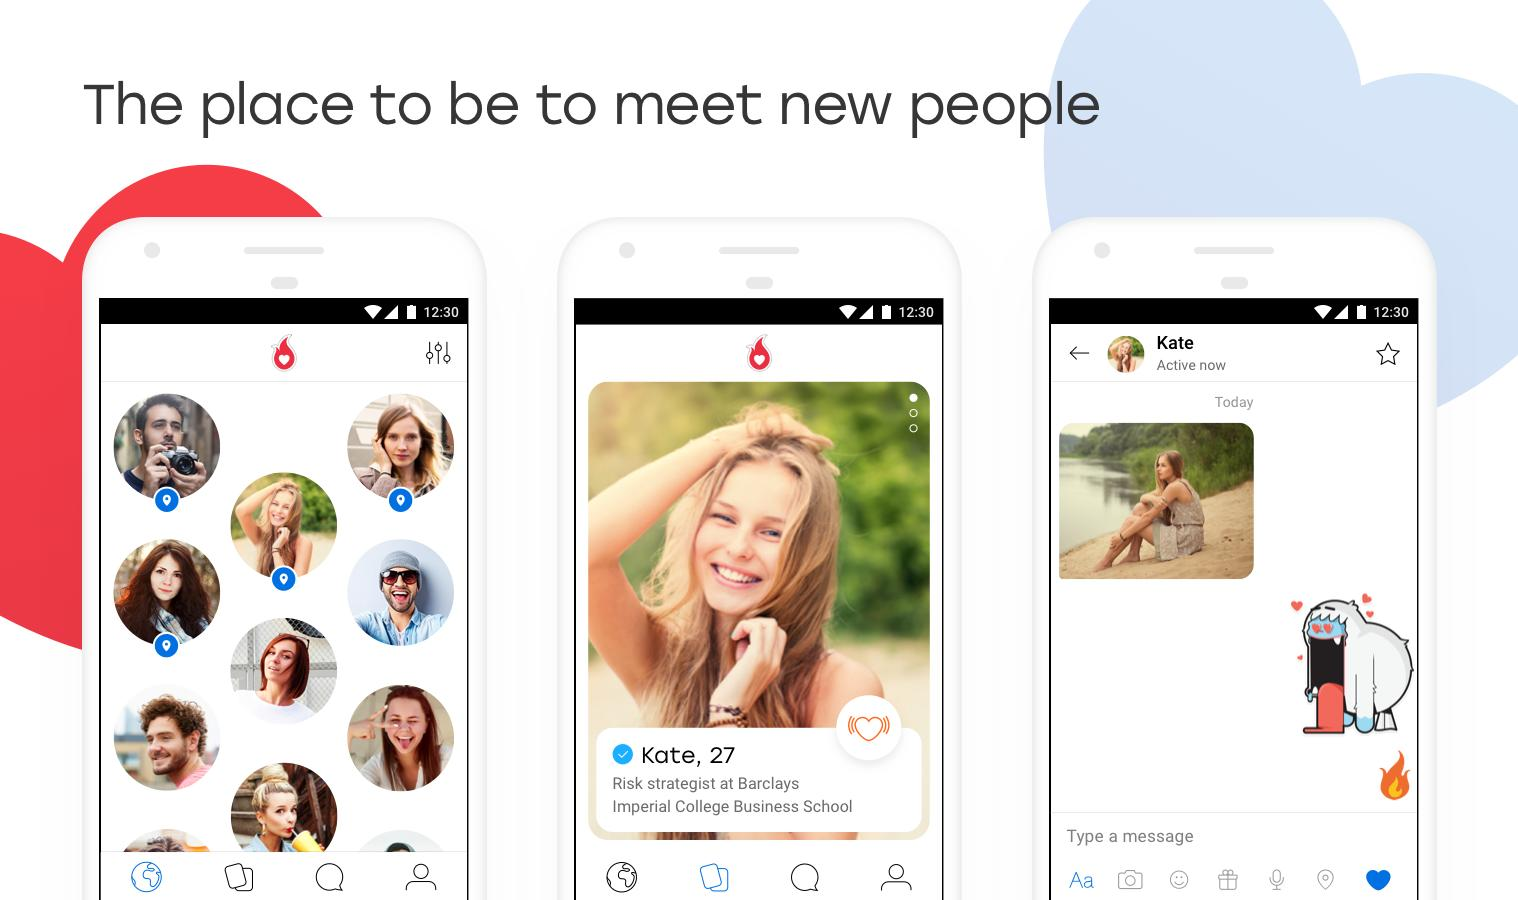 Hot or Not - Find someone right now for Android - APK Download